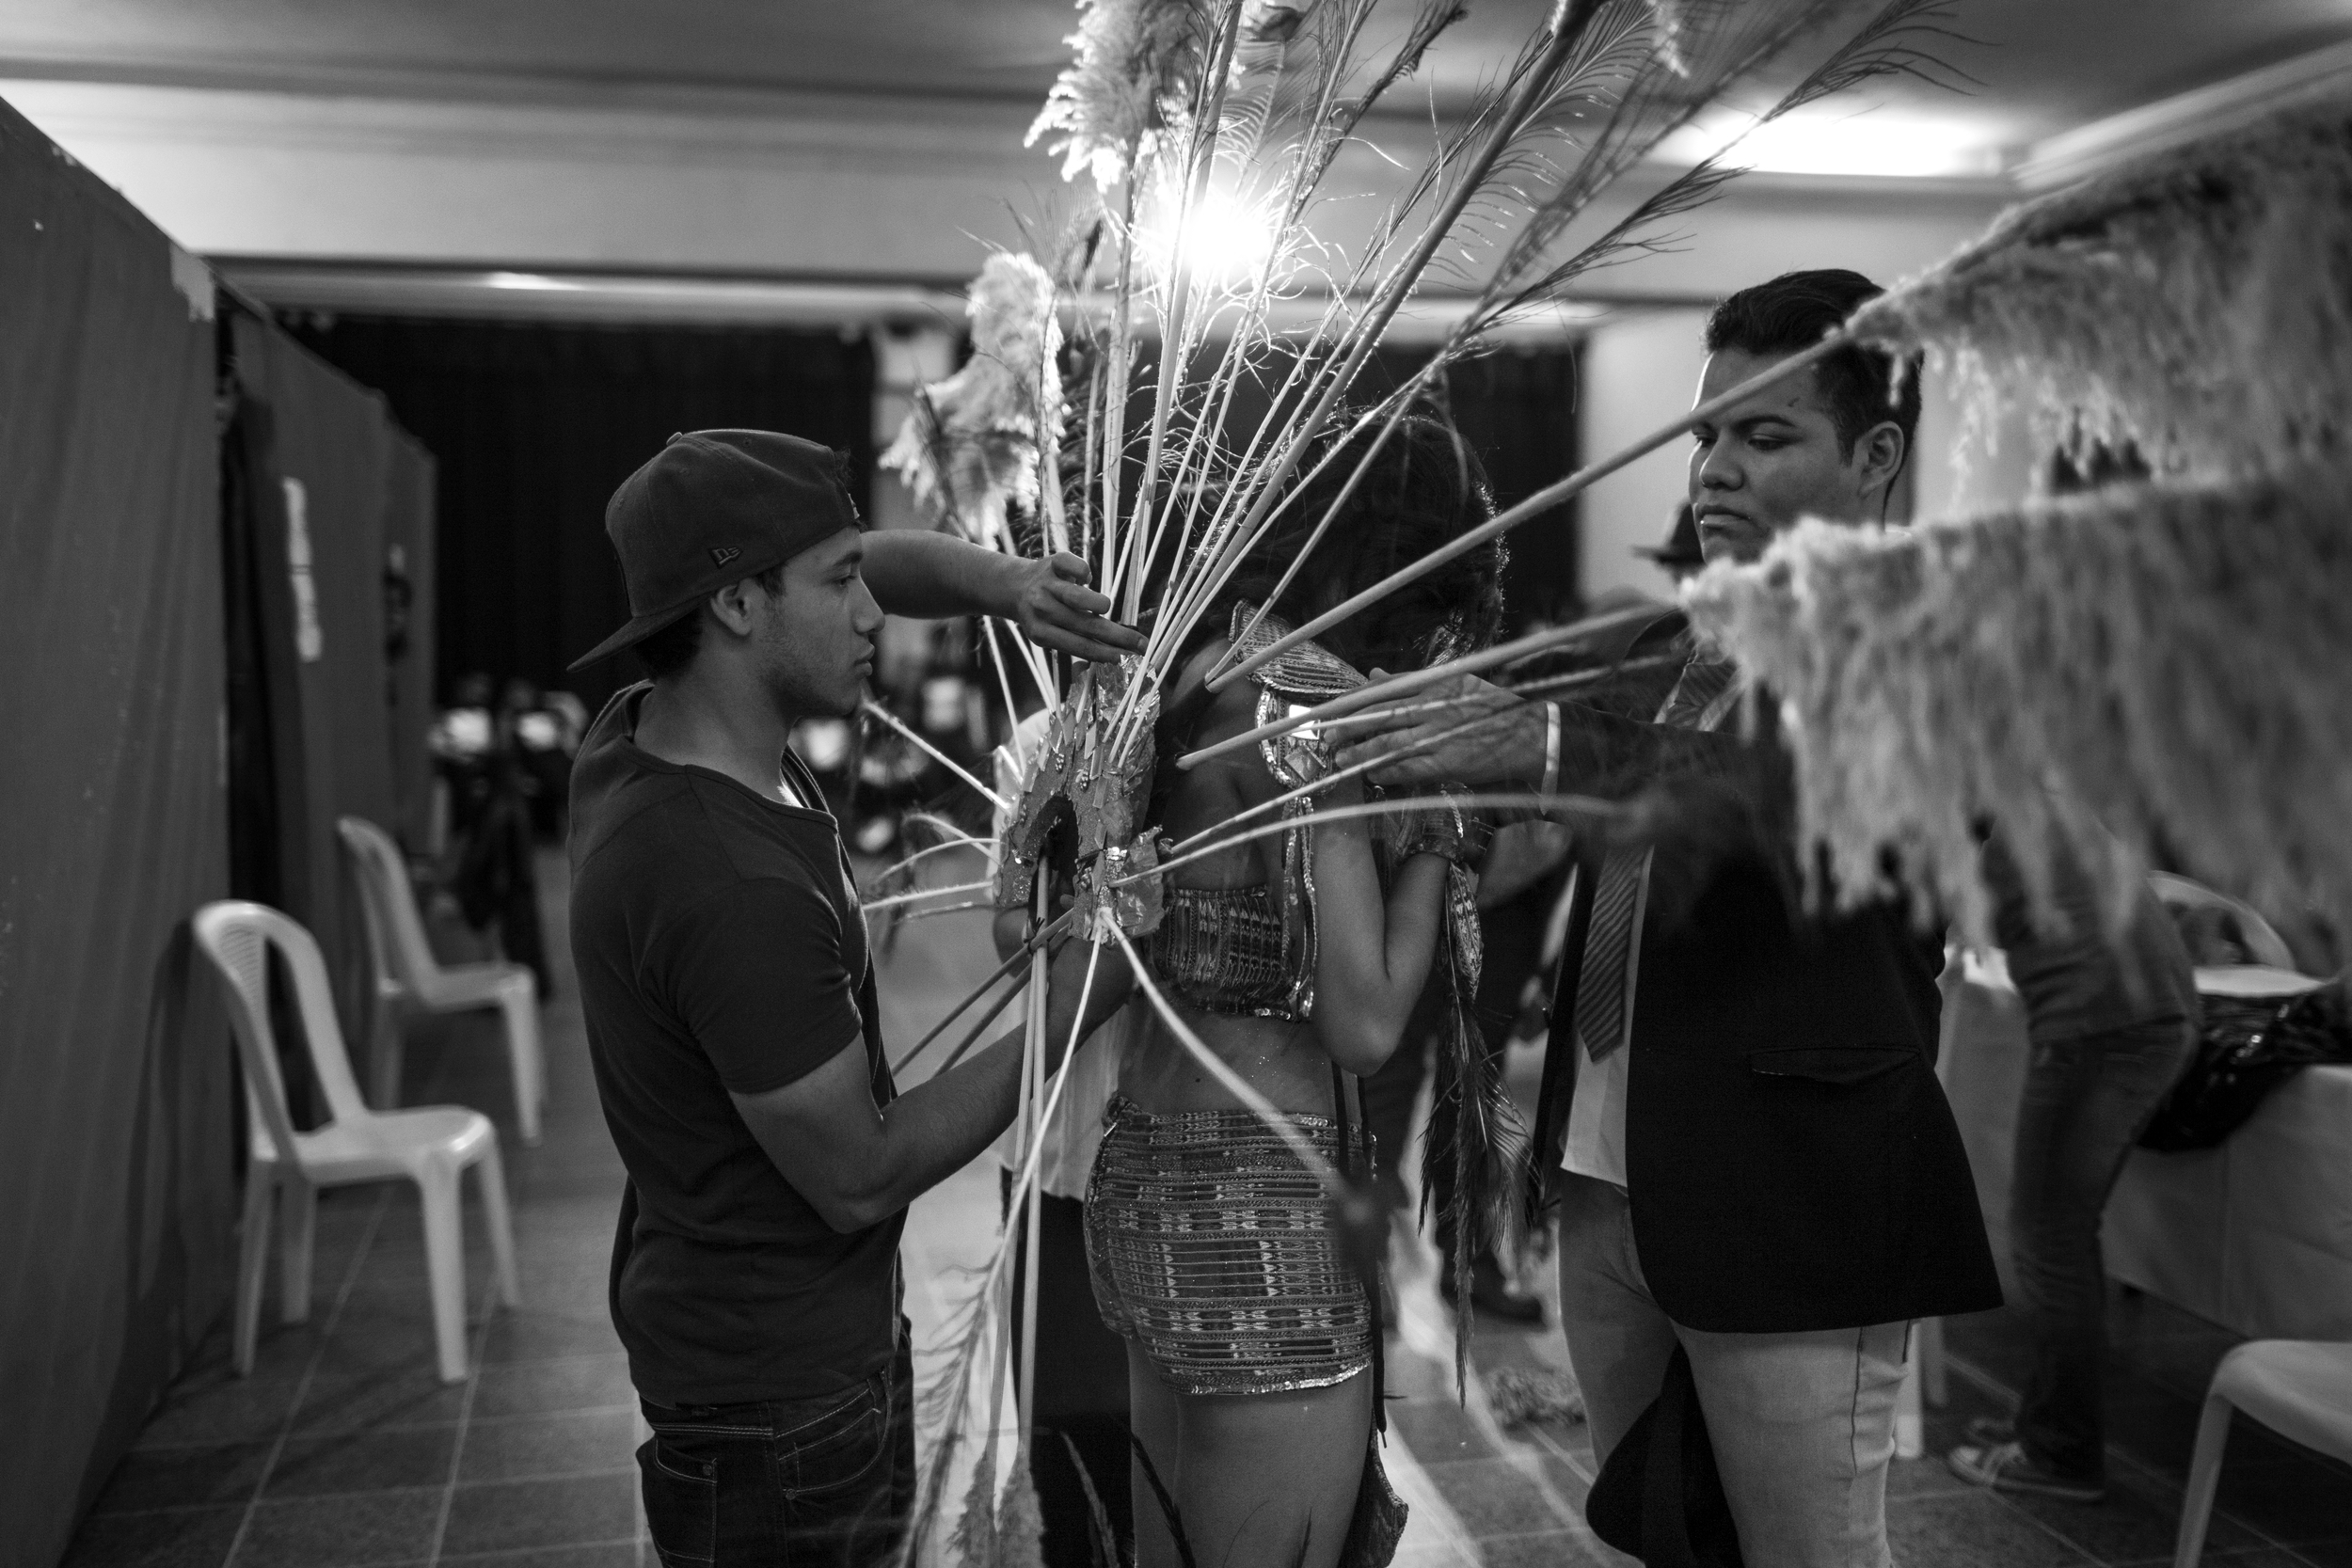 Rocio Barrios gets assistance from friends backstage at the 2014 Miss Antigua beauty pageant. The winner will compete in the Miss Guatemala beauty pageant. Antigua, Guatemala.